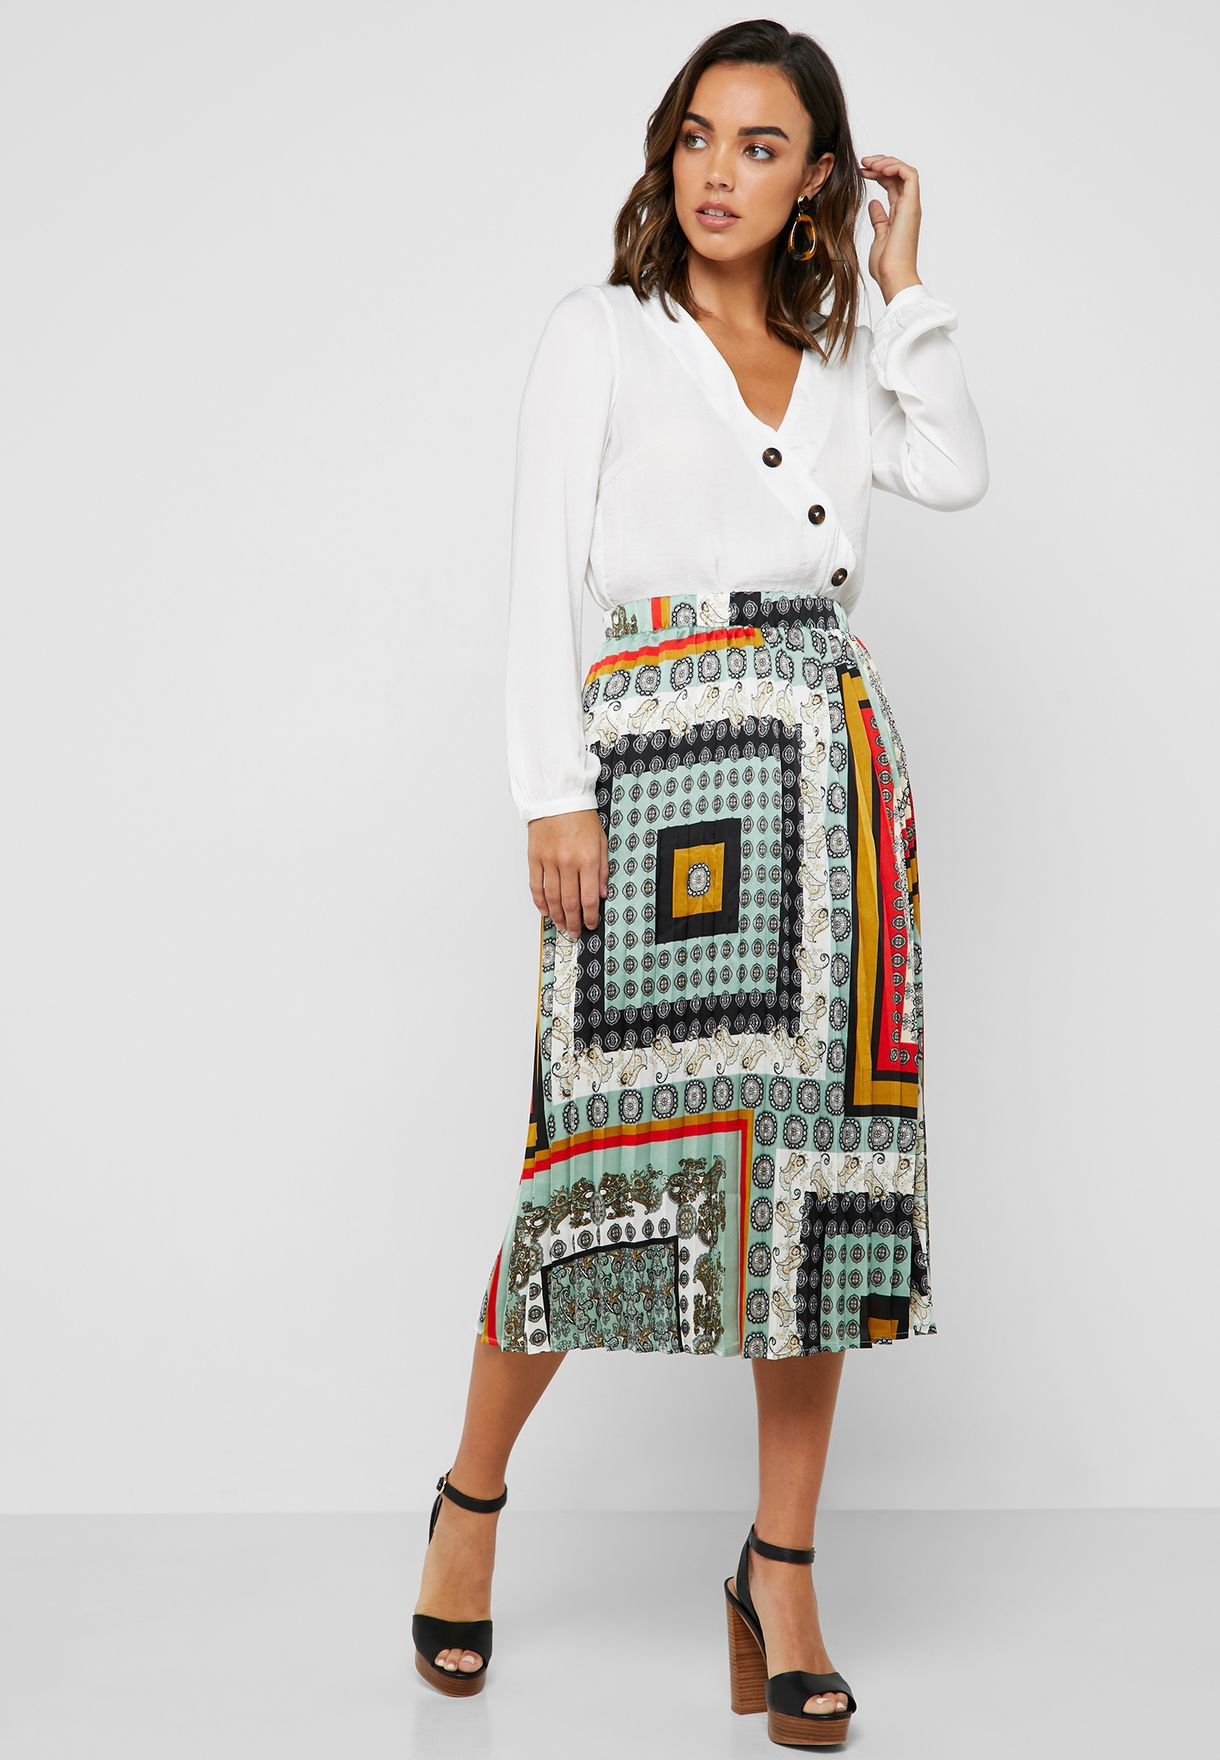 061f733959 Shop Vila prints Printed Pleated Skirt 14053746 for Women in UAE -  71712AT24PPP